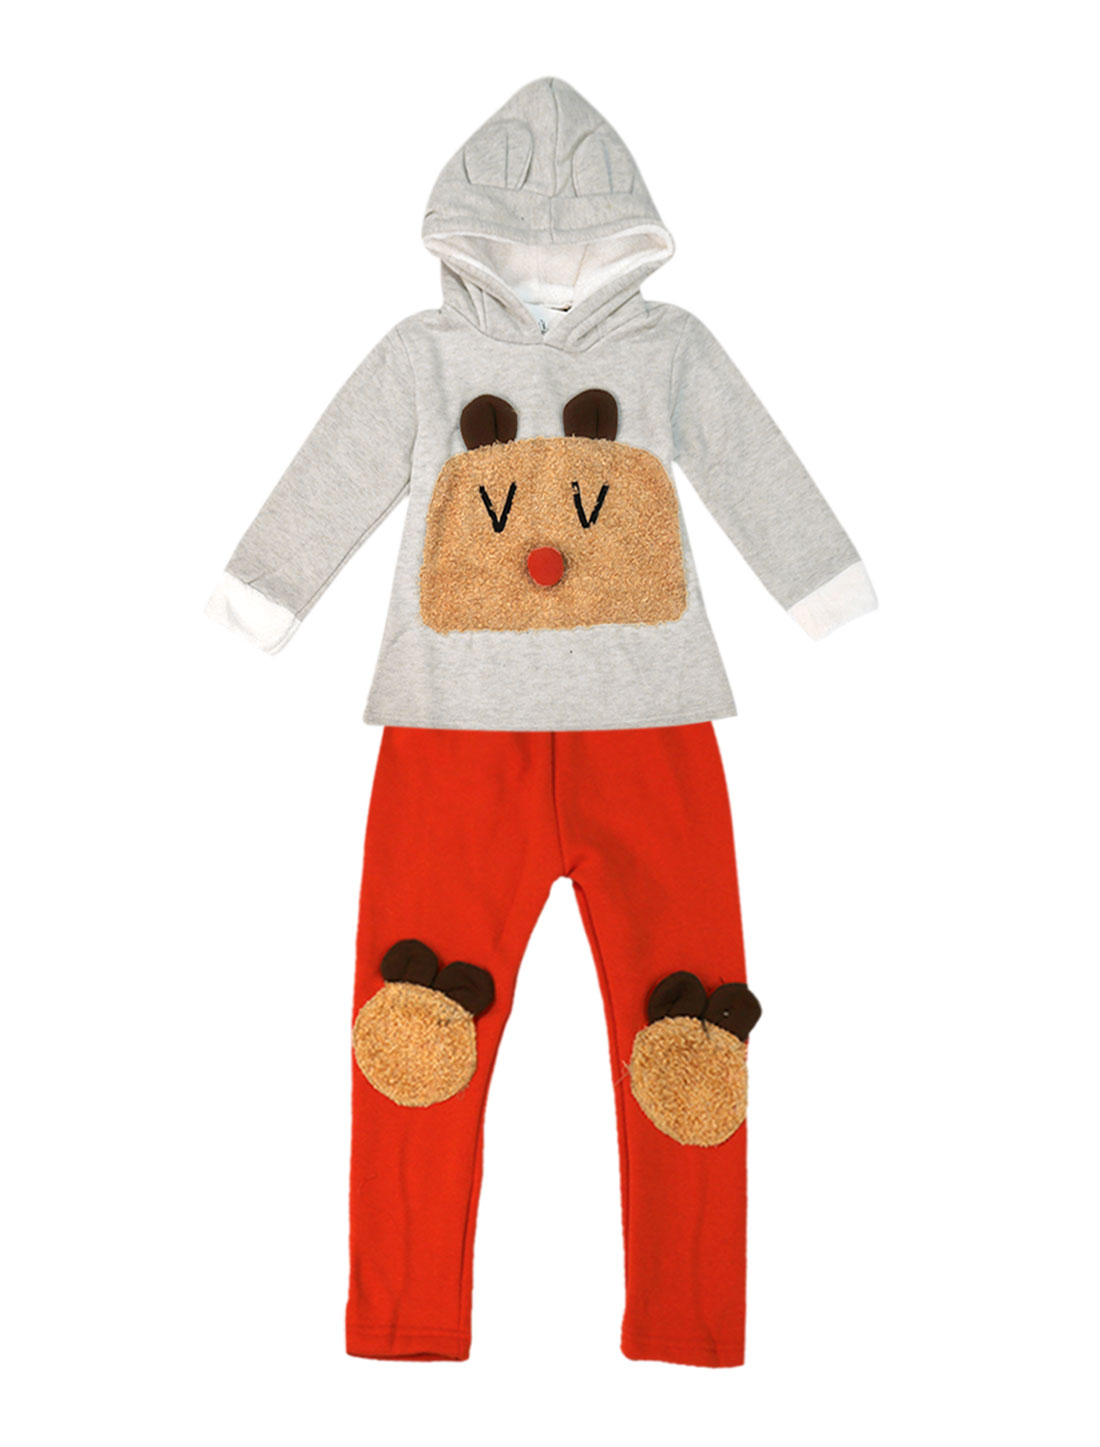 Fashion Girls Pullover Tops & Soft Pants Light Gray Orange Red 2T